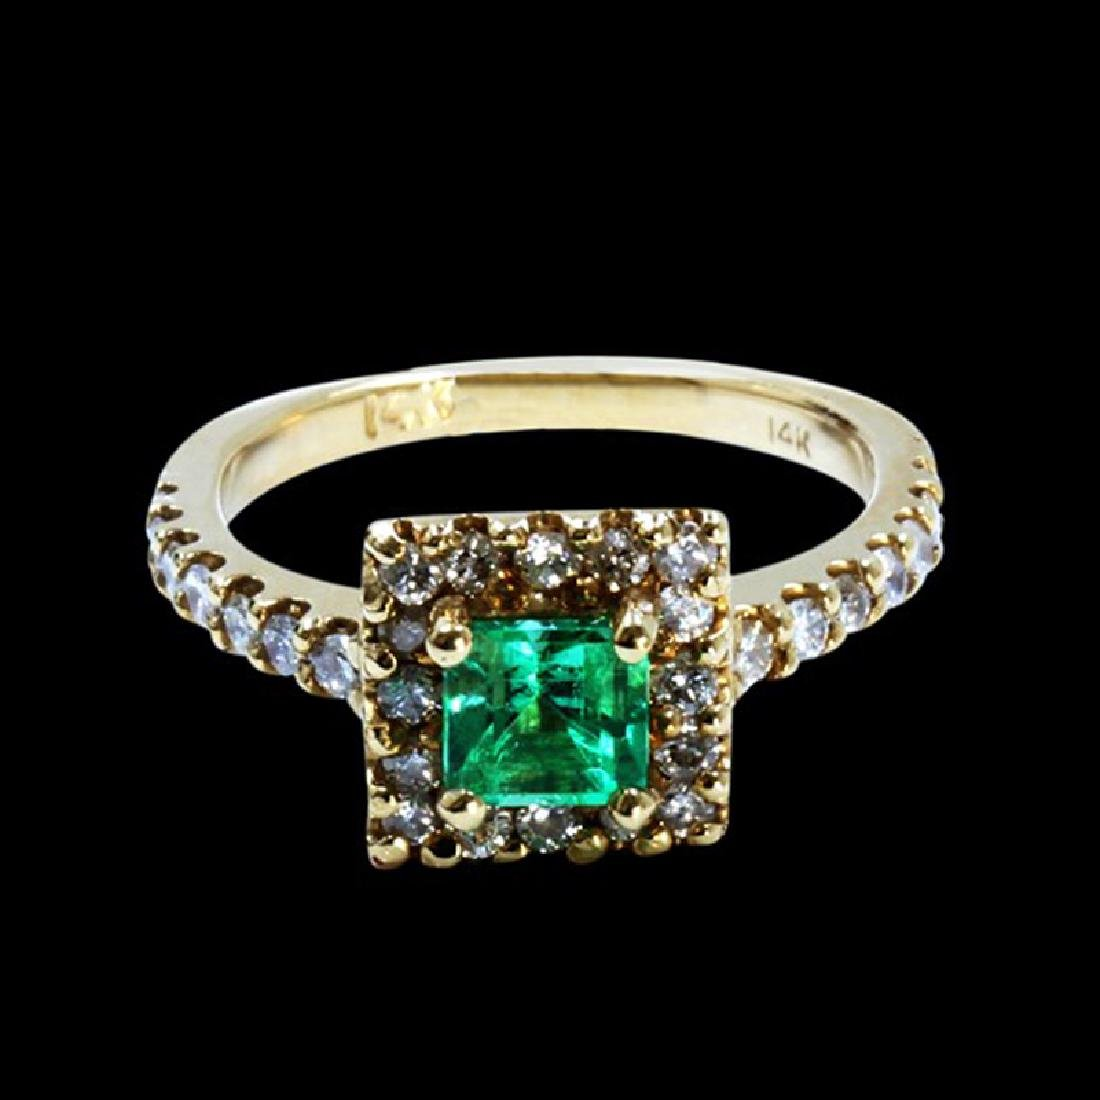 0.54CT NATURAL COLOMBIAN EMERALD 14K YELLOW GOLD RING